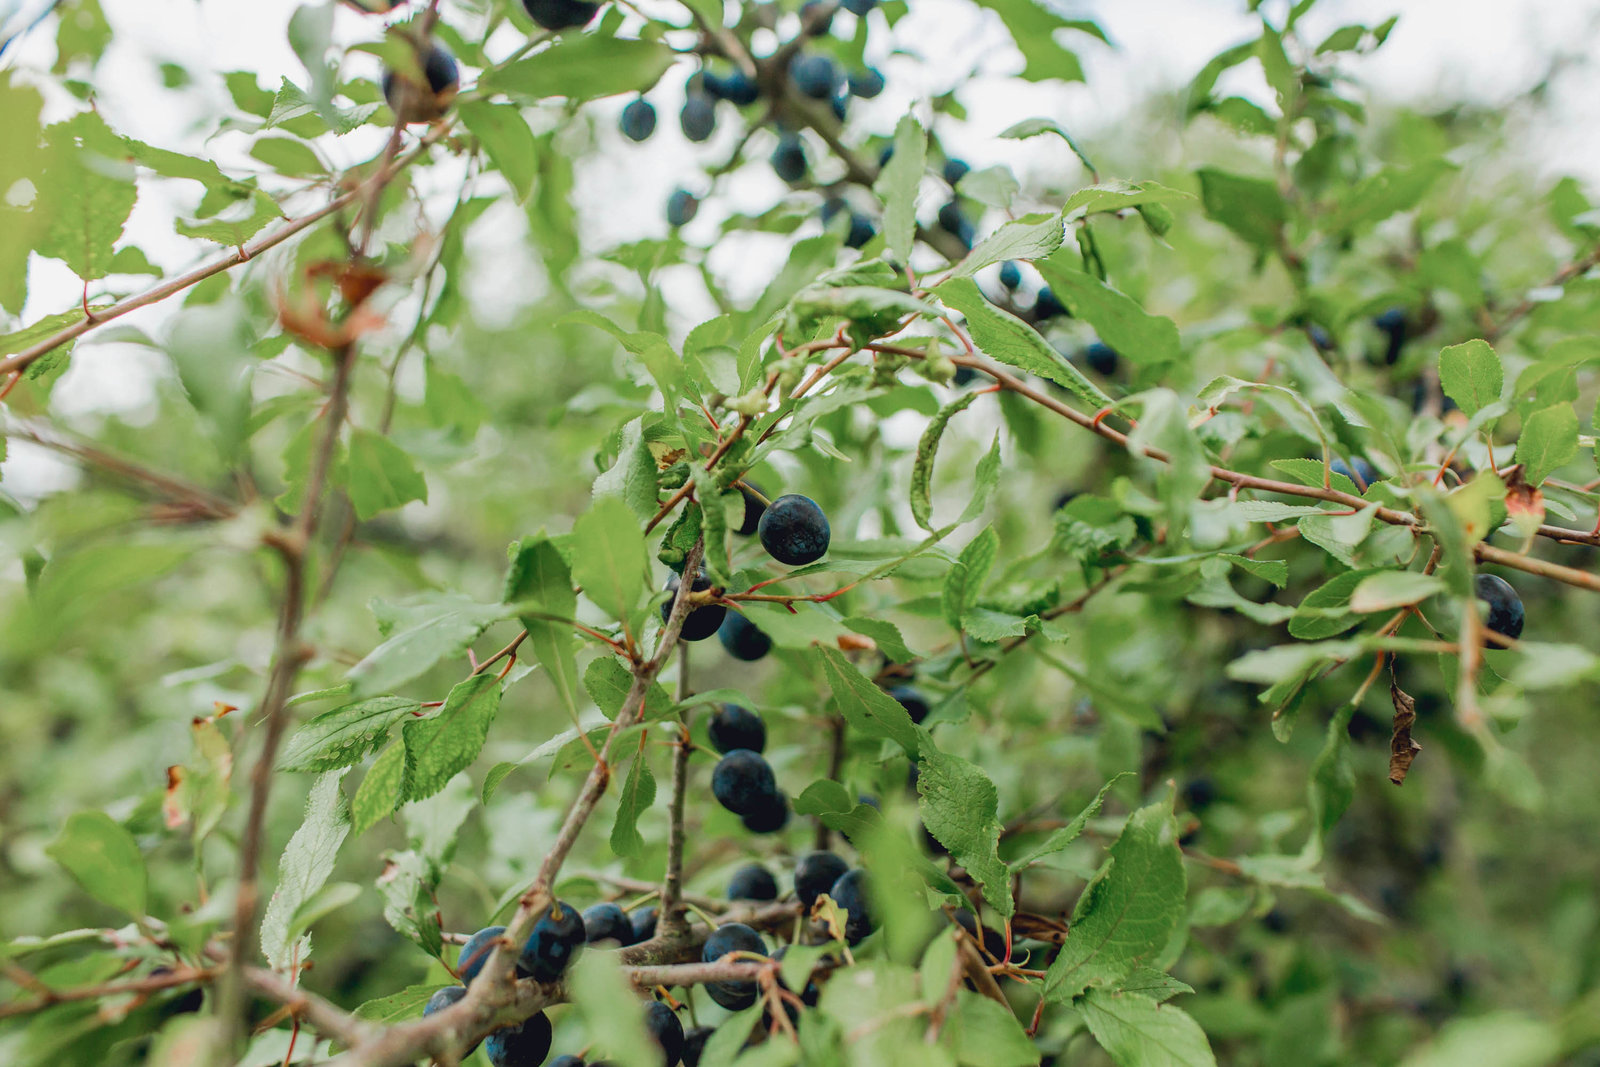 plant-berries-marie-antoinette-hamlet-versailles-france-travel-destination-kate-timbers-photography-1719